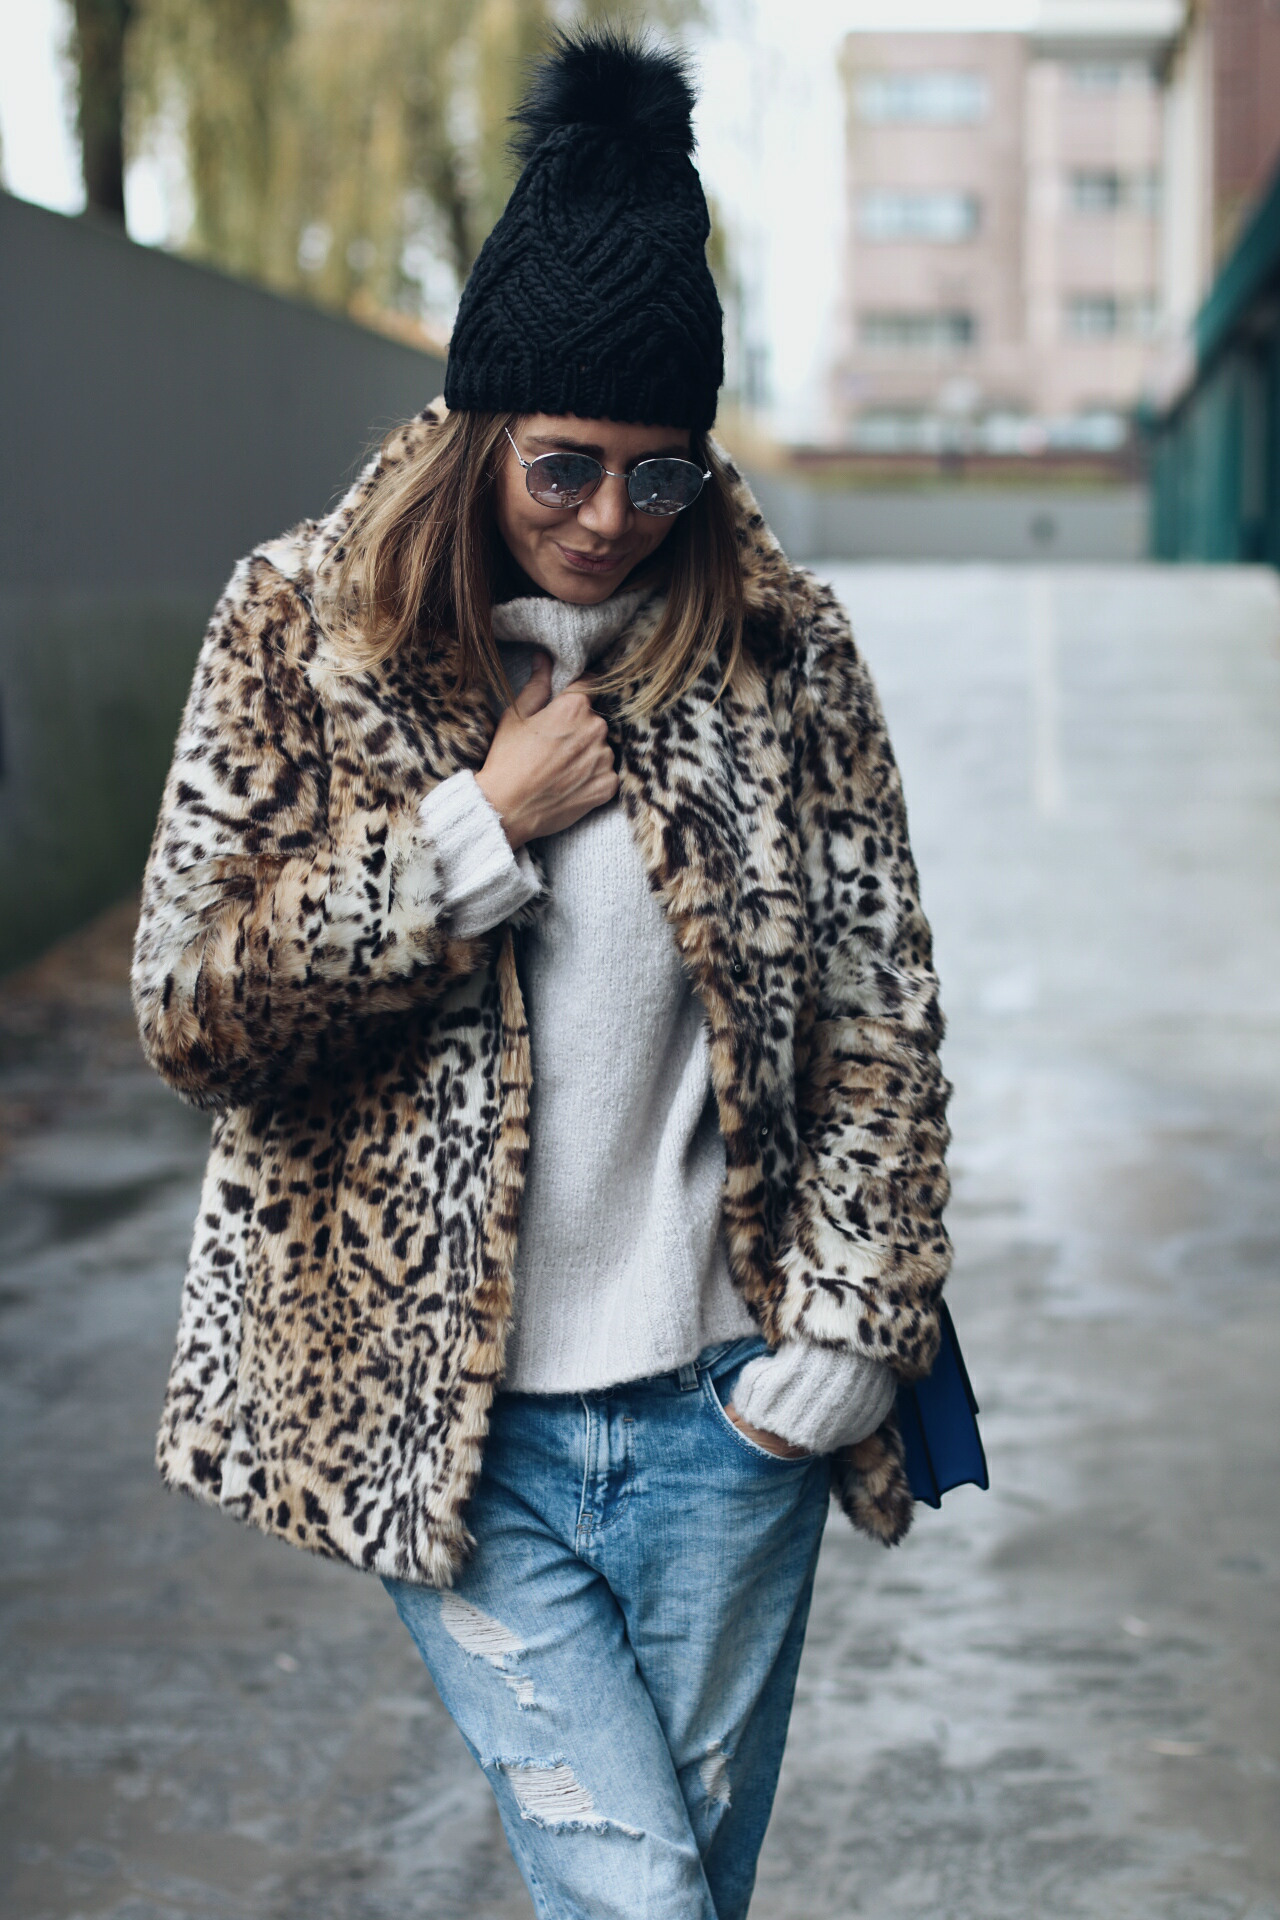 Fashion Blogger - www.wordsthroughtheeyes.com